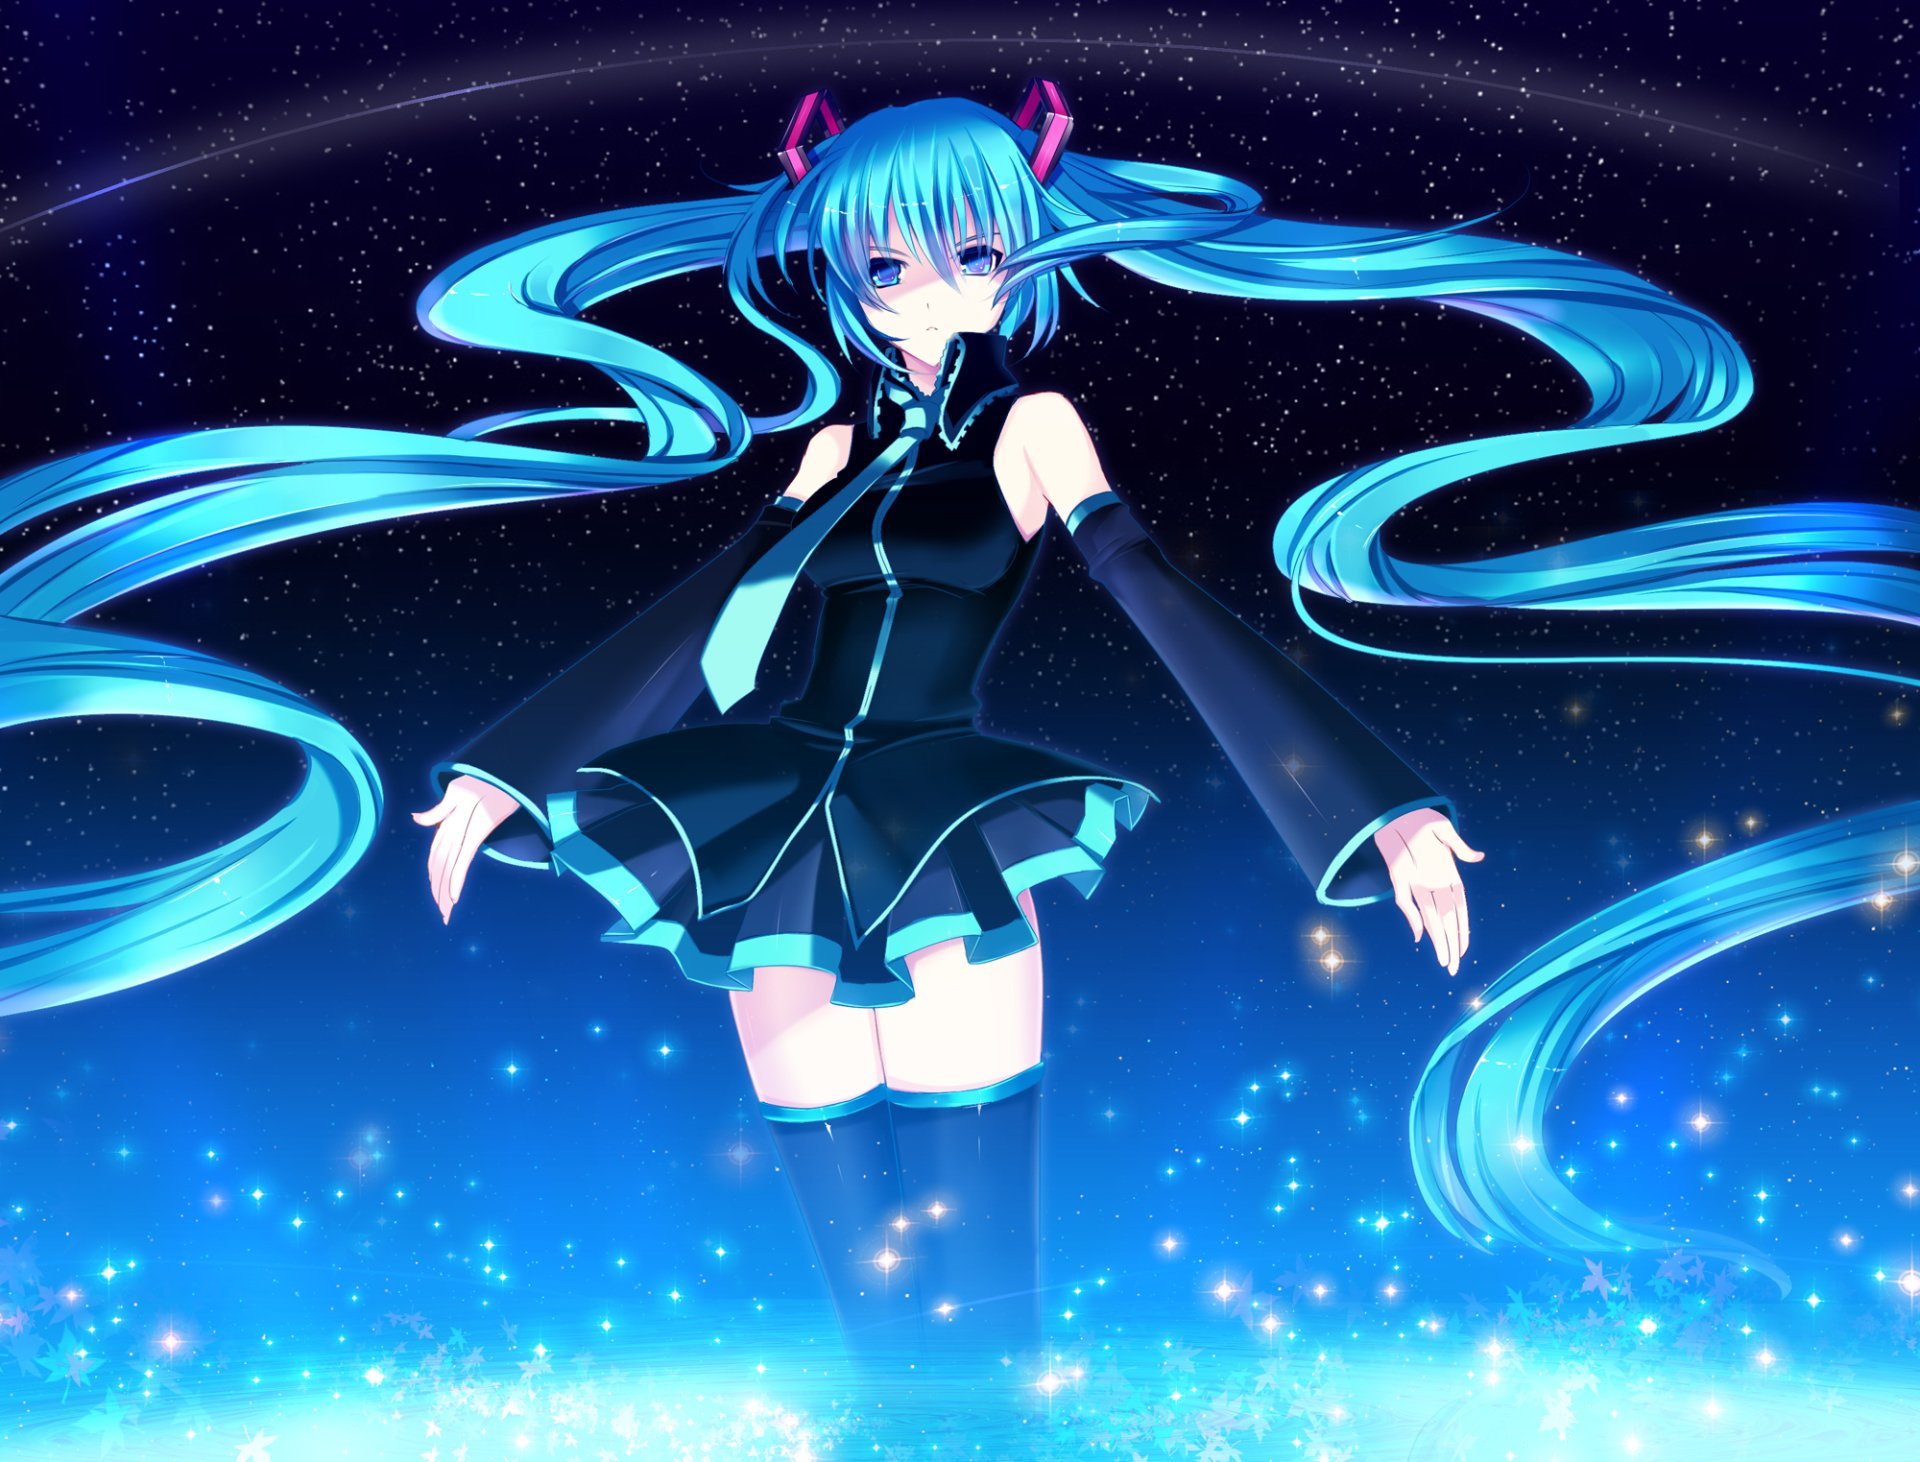 Anime - Vocaloid  Hatsune Miku Sky Night Stars Twintails Aqua Hair Aqua Eyes Skirt Tie Dress Girl Wallpaper